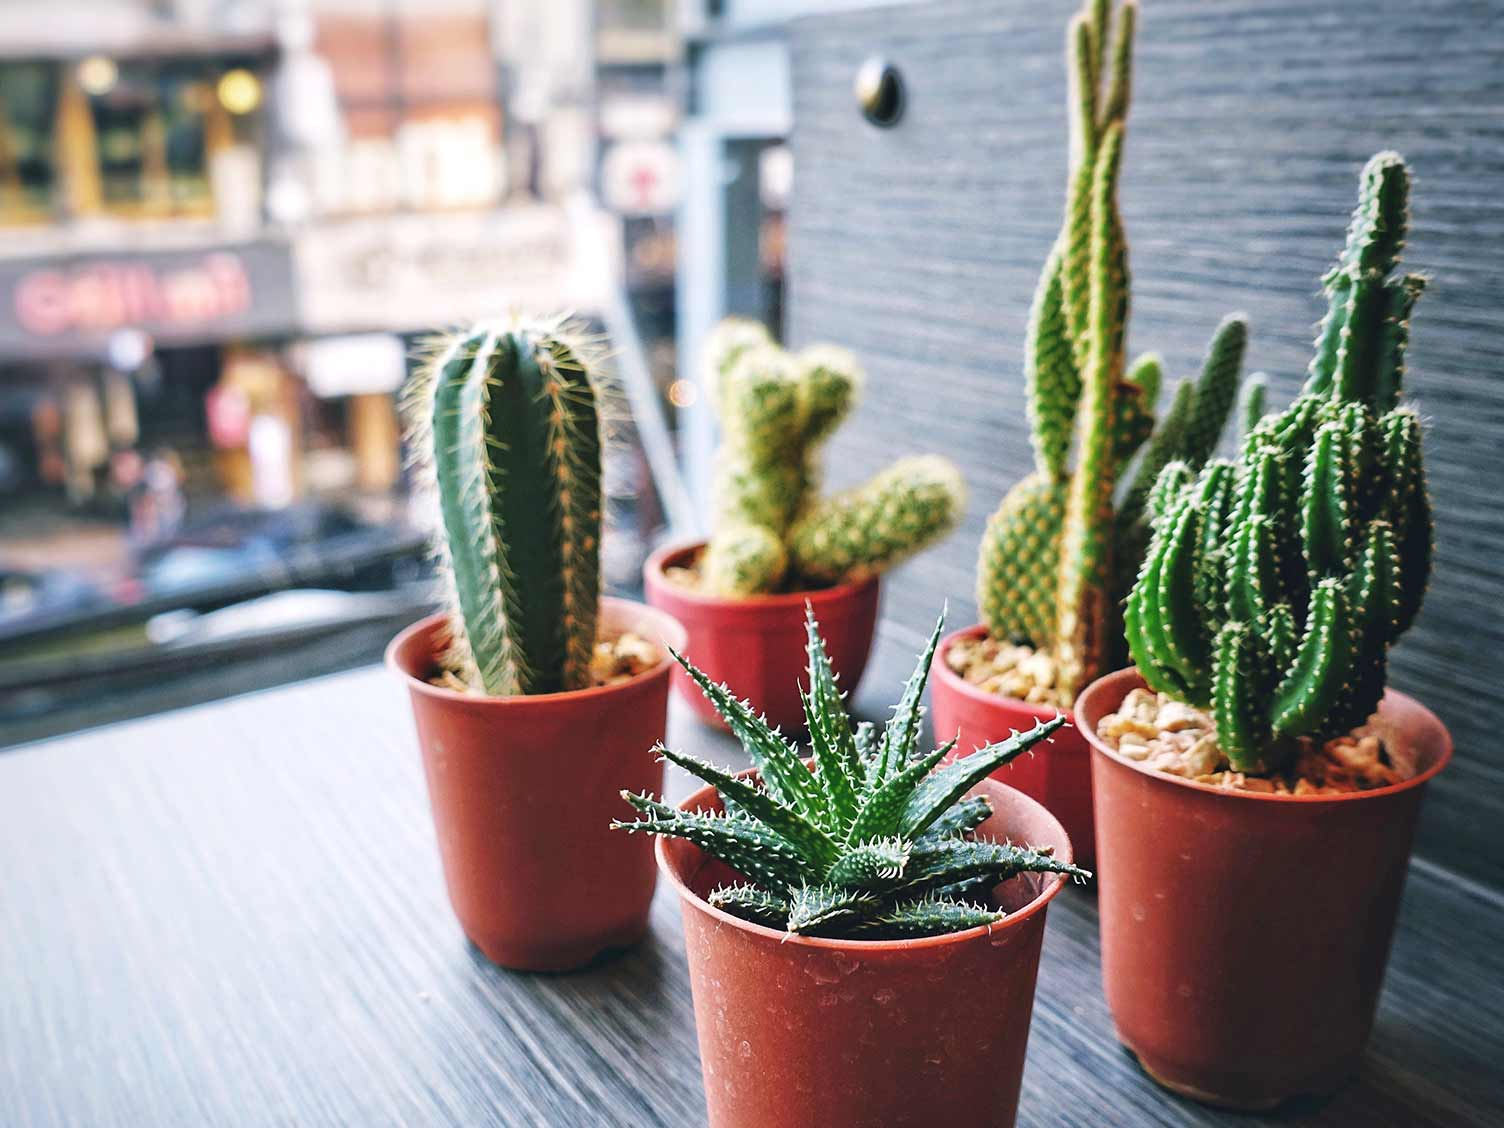 How To Look After A Cactus Plant Love The Garden